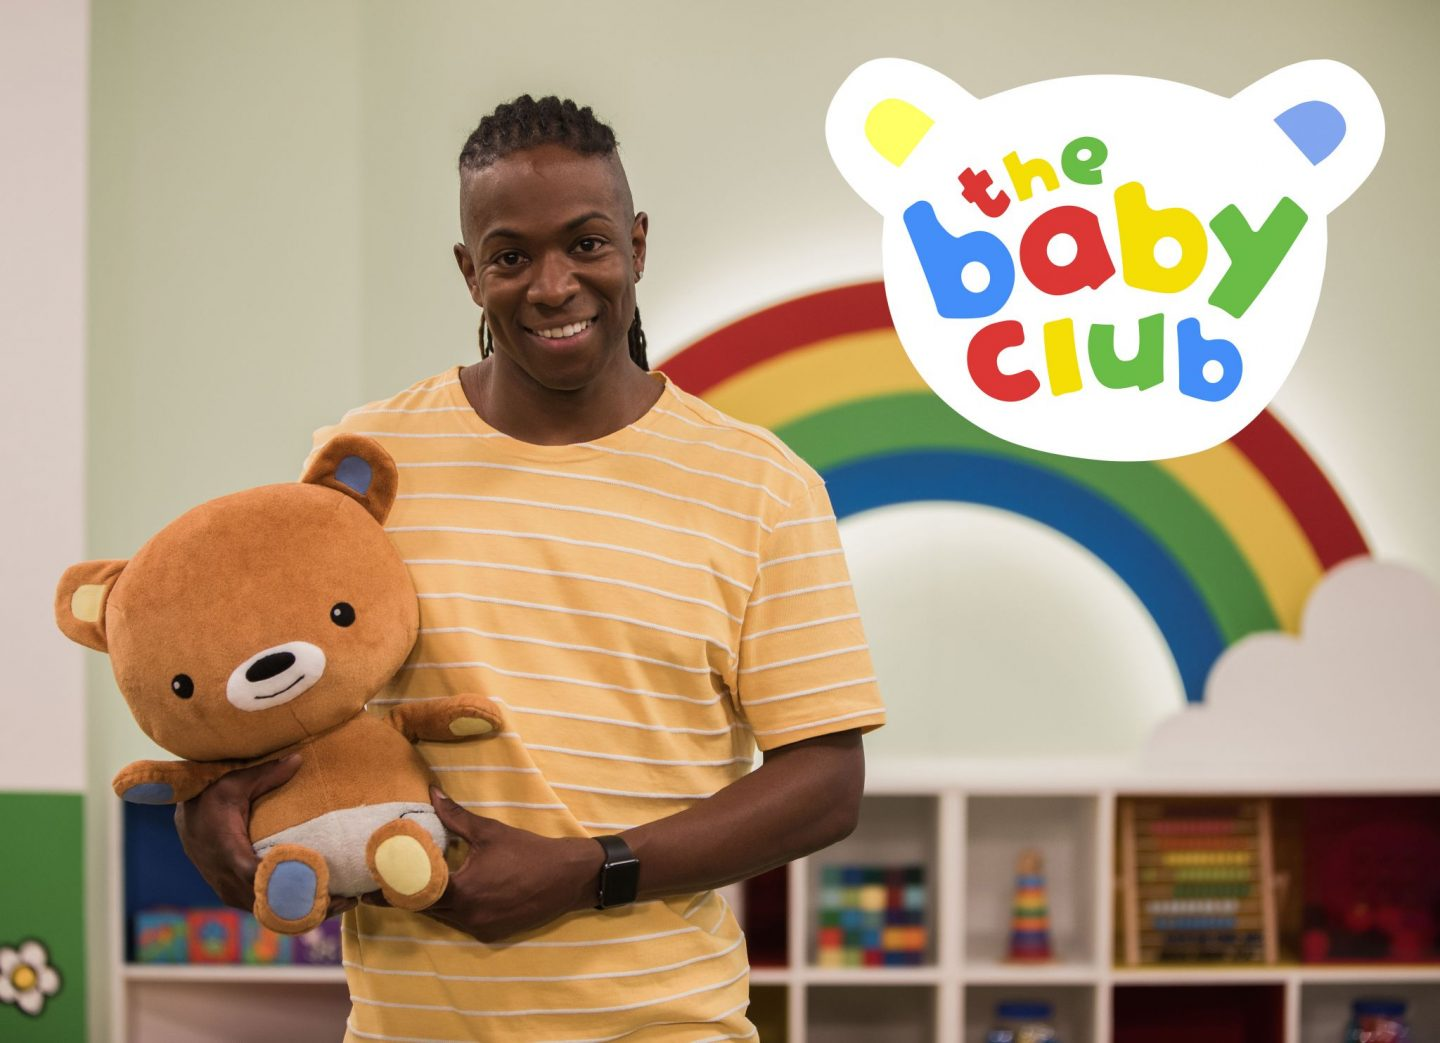 The Baby Club, Baby Club, Cbeebies, Nigel Clarke, TV presenter Nigel Clarke, BBC, dad blog, uk dad blog, dadbloguk.com, sahd, wahd, family television